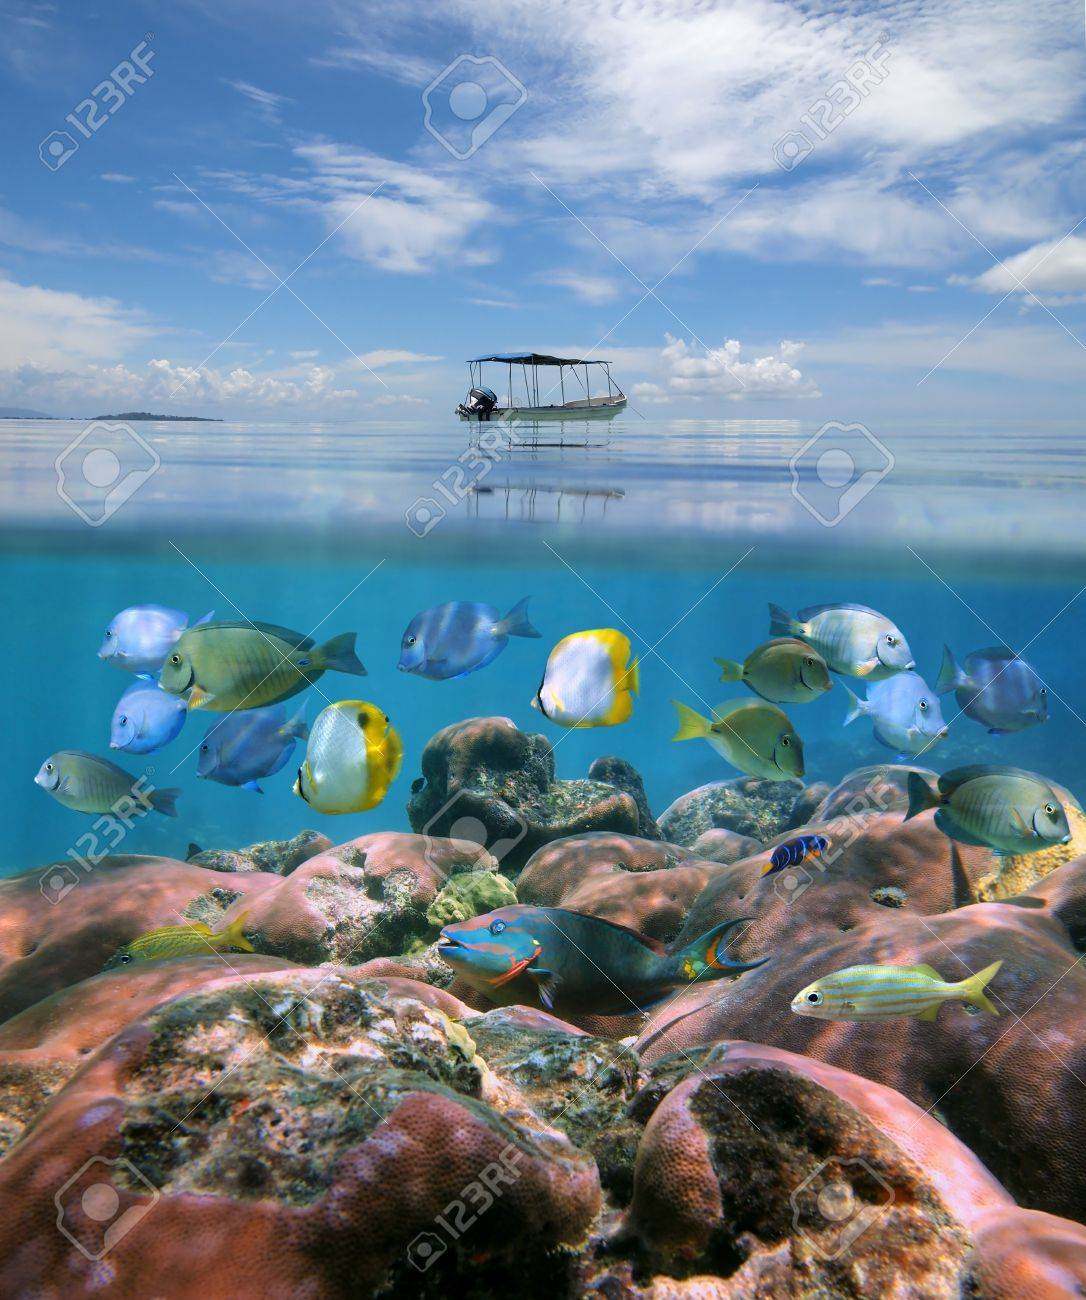 boat alone above a coral reef with shoal of tropical fish just boat alone above a coral reef with shoal of tropical fish just under the water surface